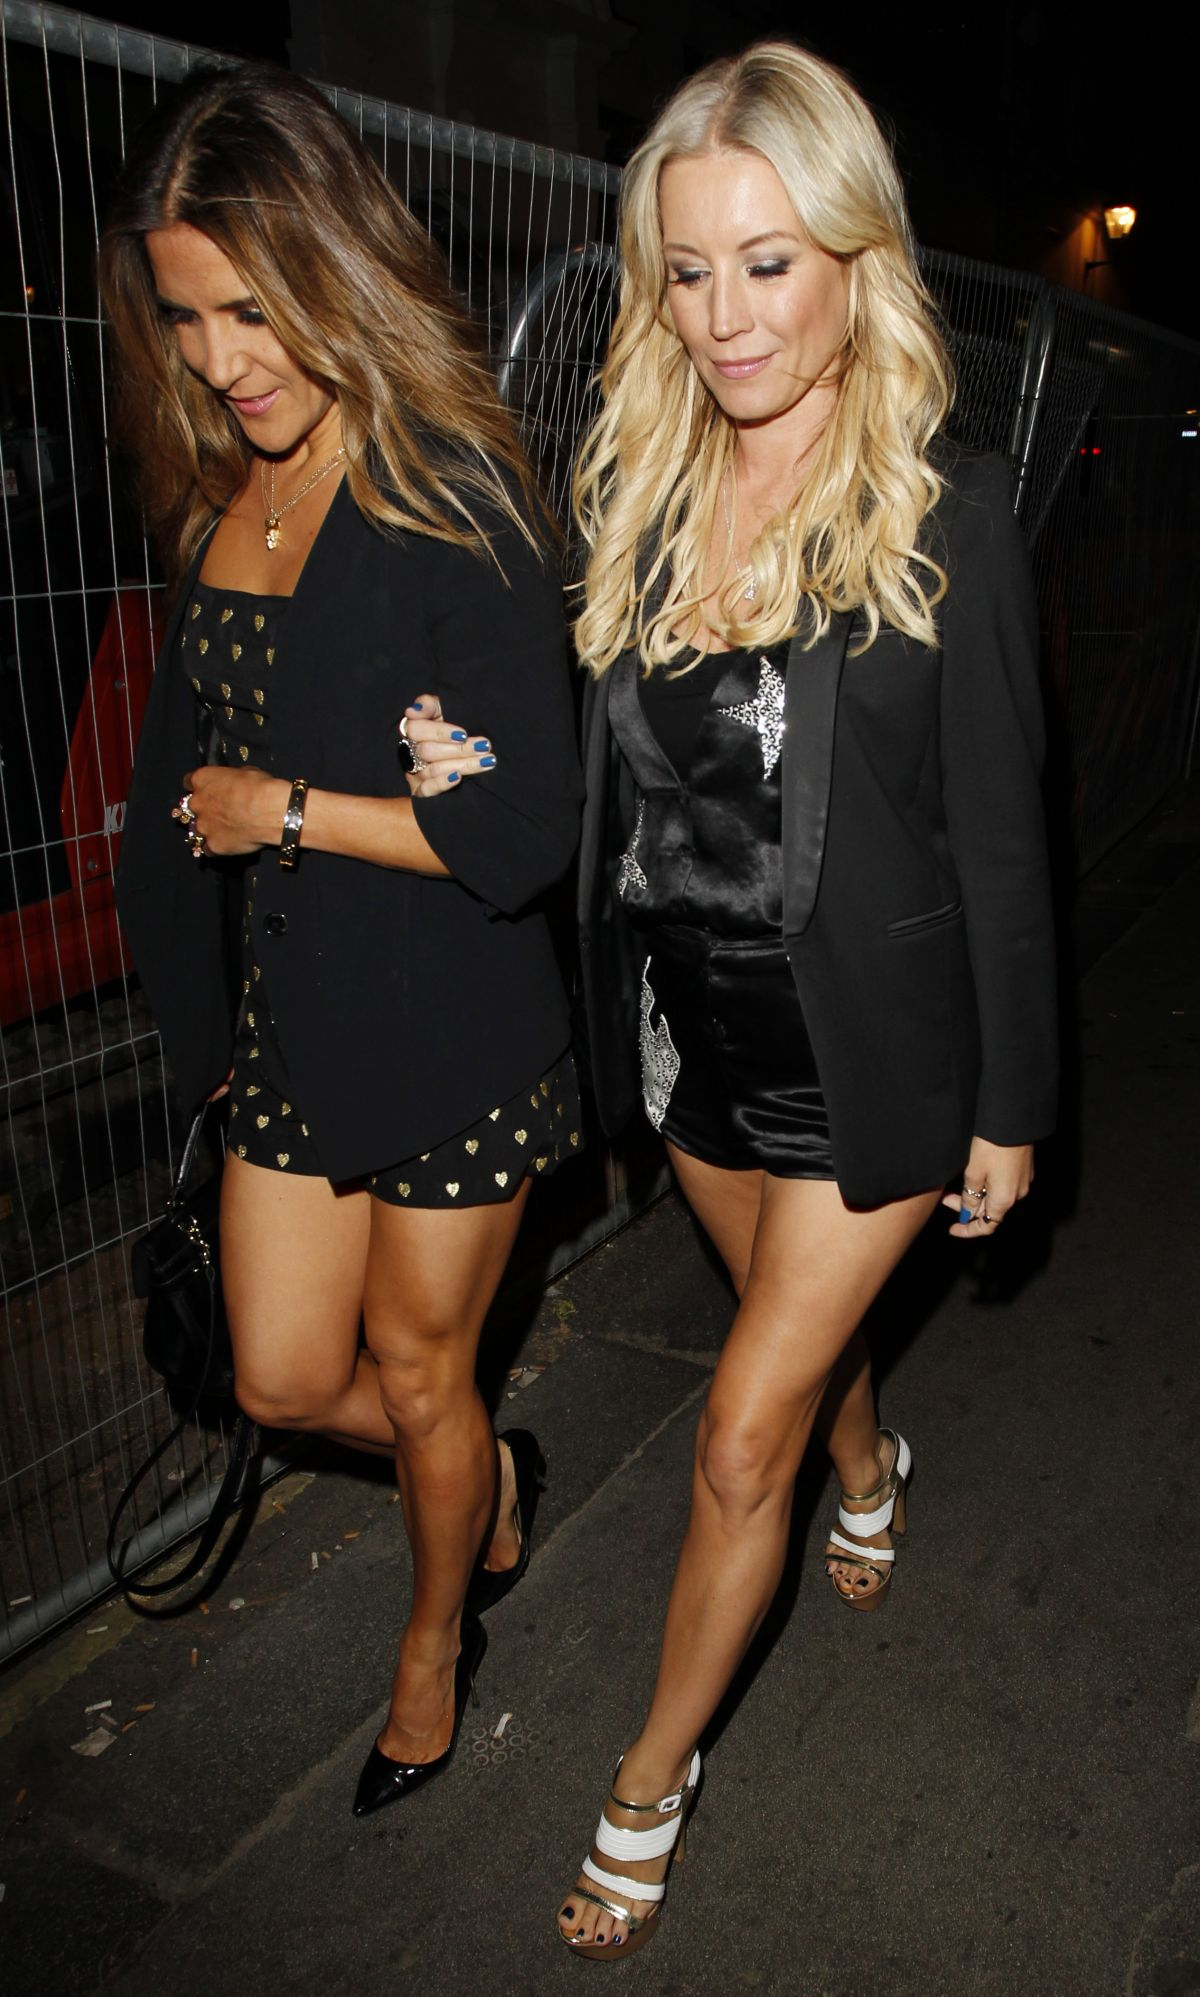 DENISE VAN OUTEN and AMANDA BYRAM at Gilgamesh Nightclub